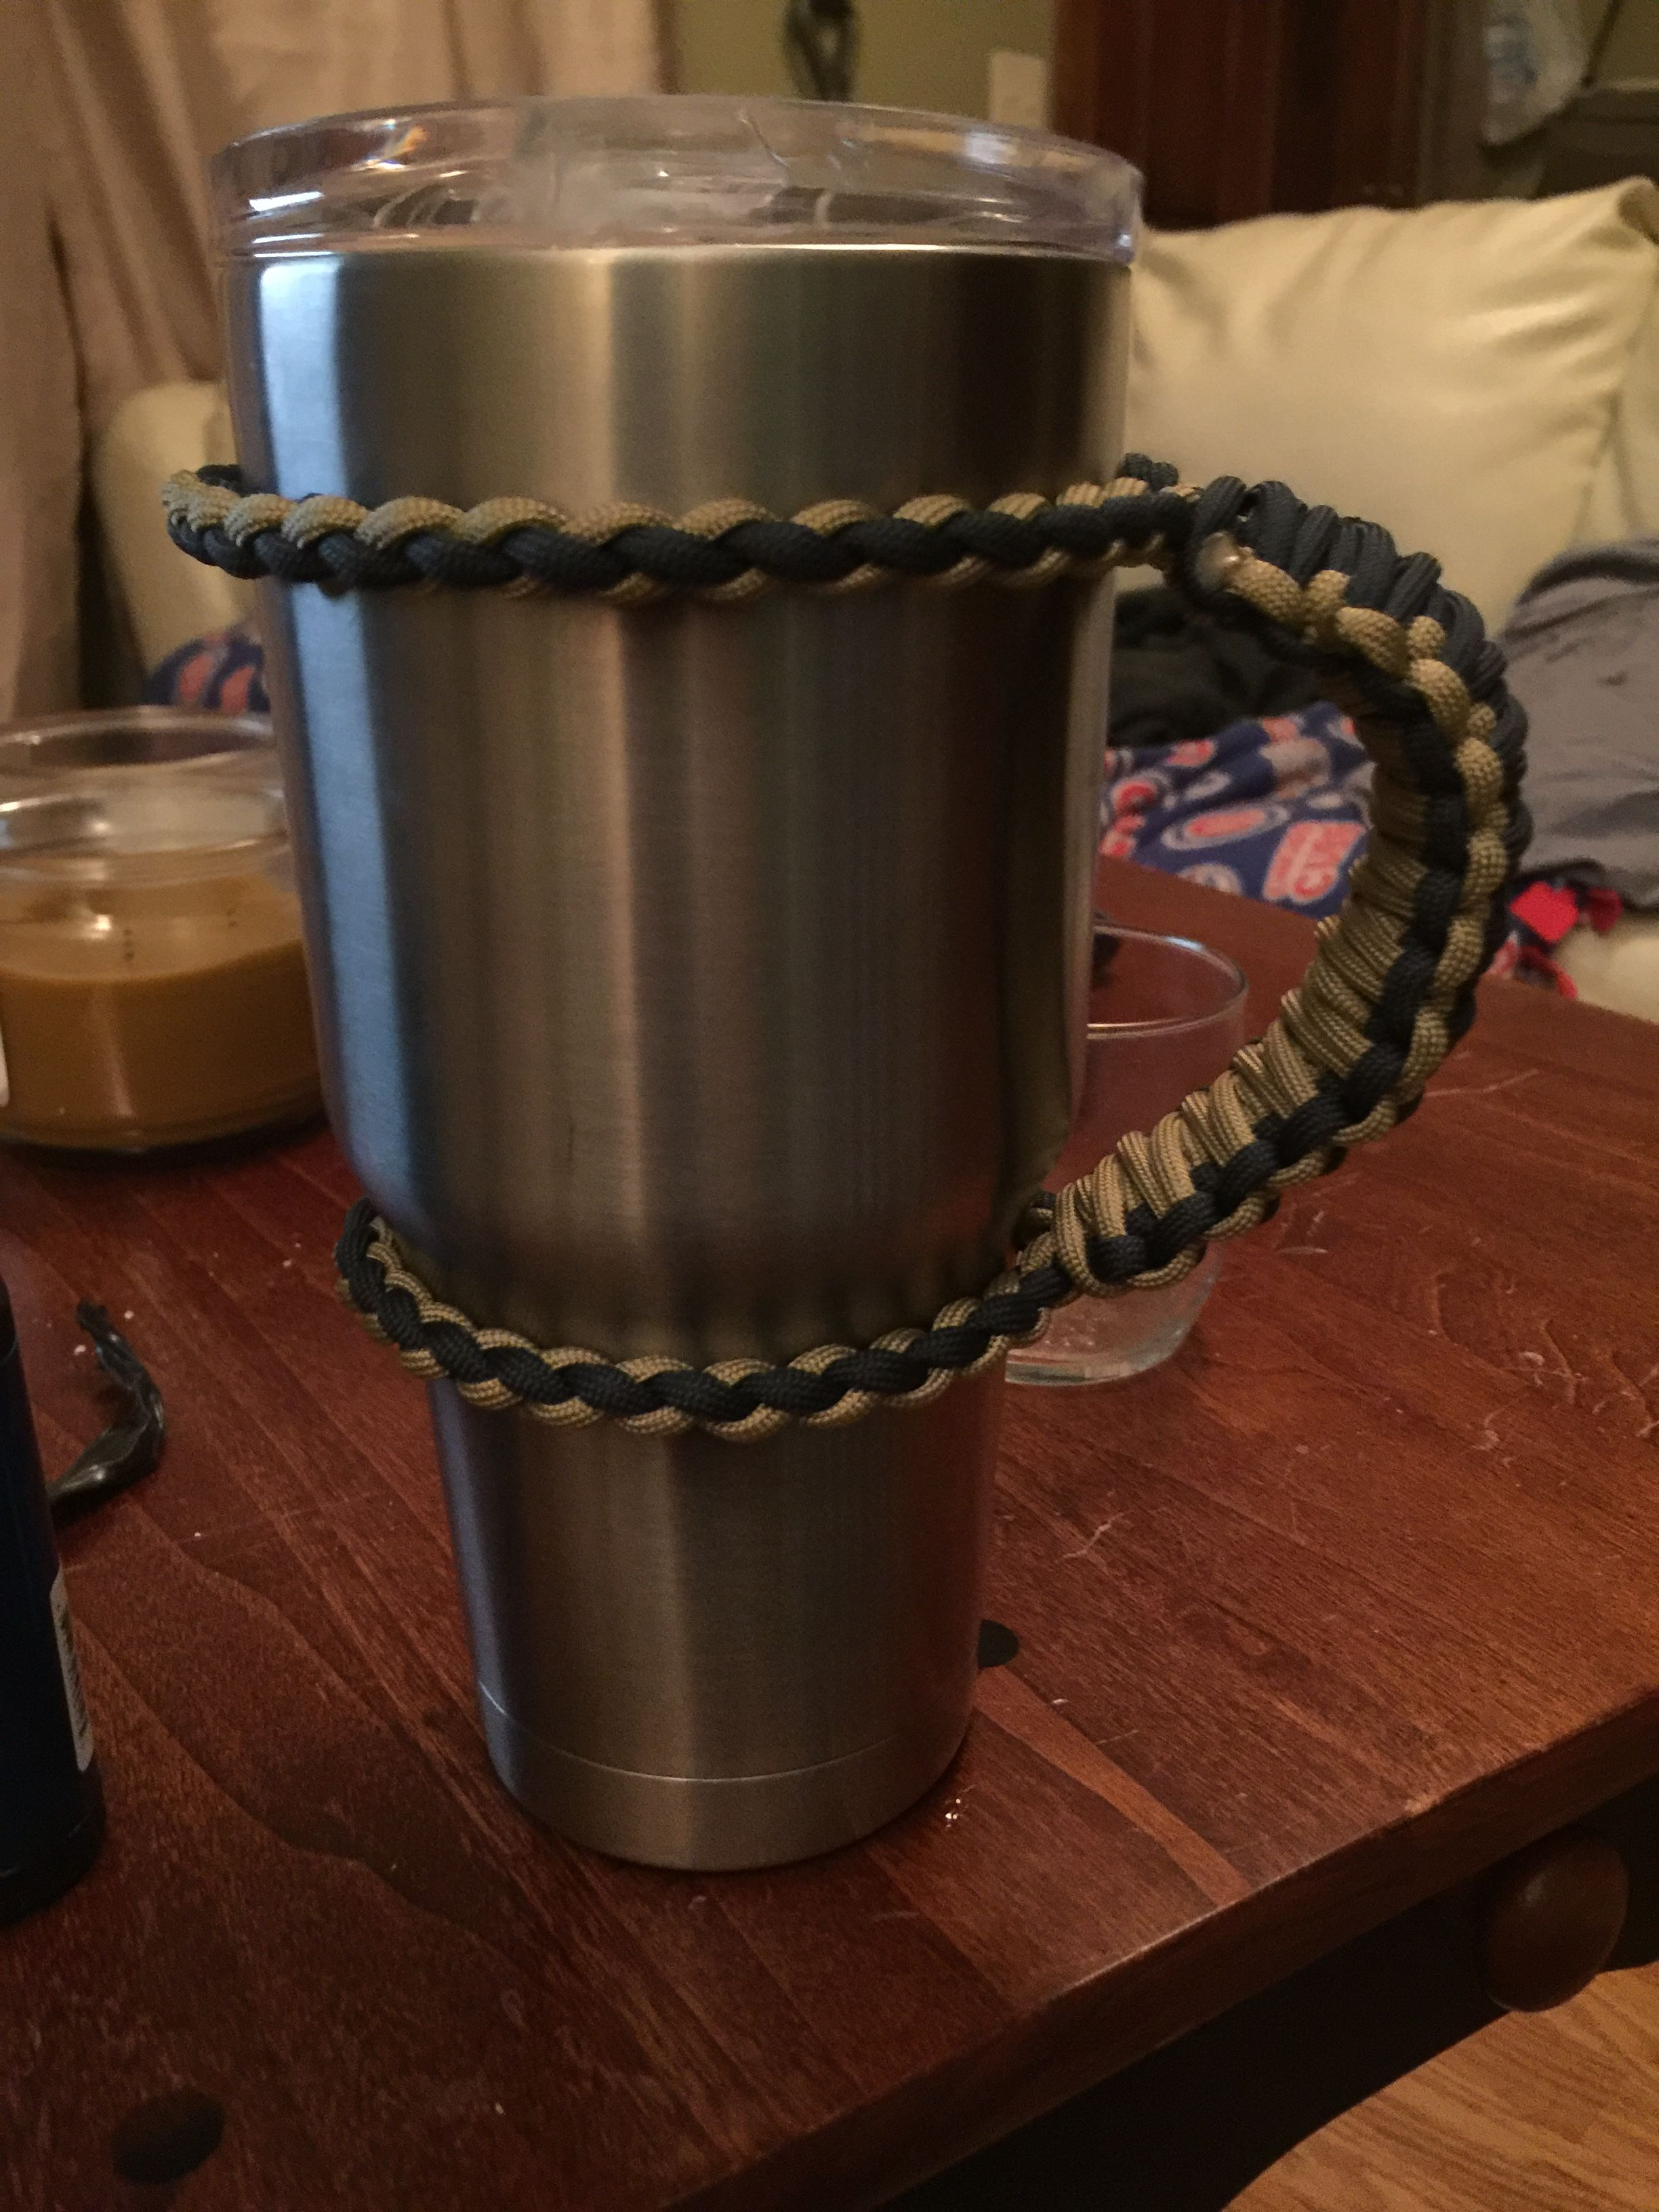 Yeti cup handle Cup handles, Yeti cup handle, Cups and mugs